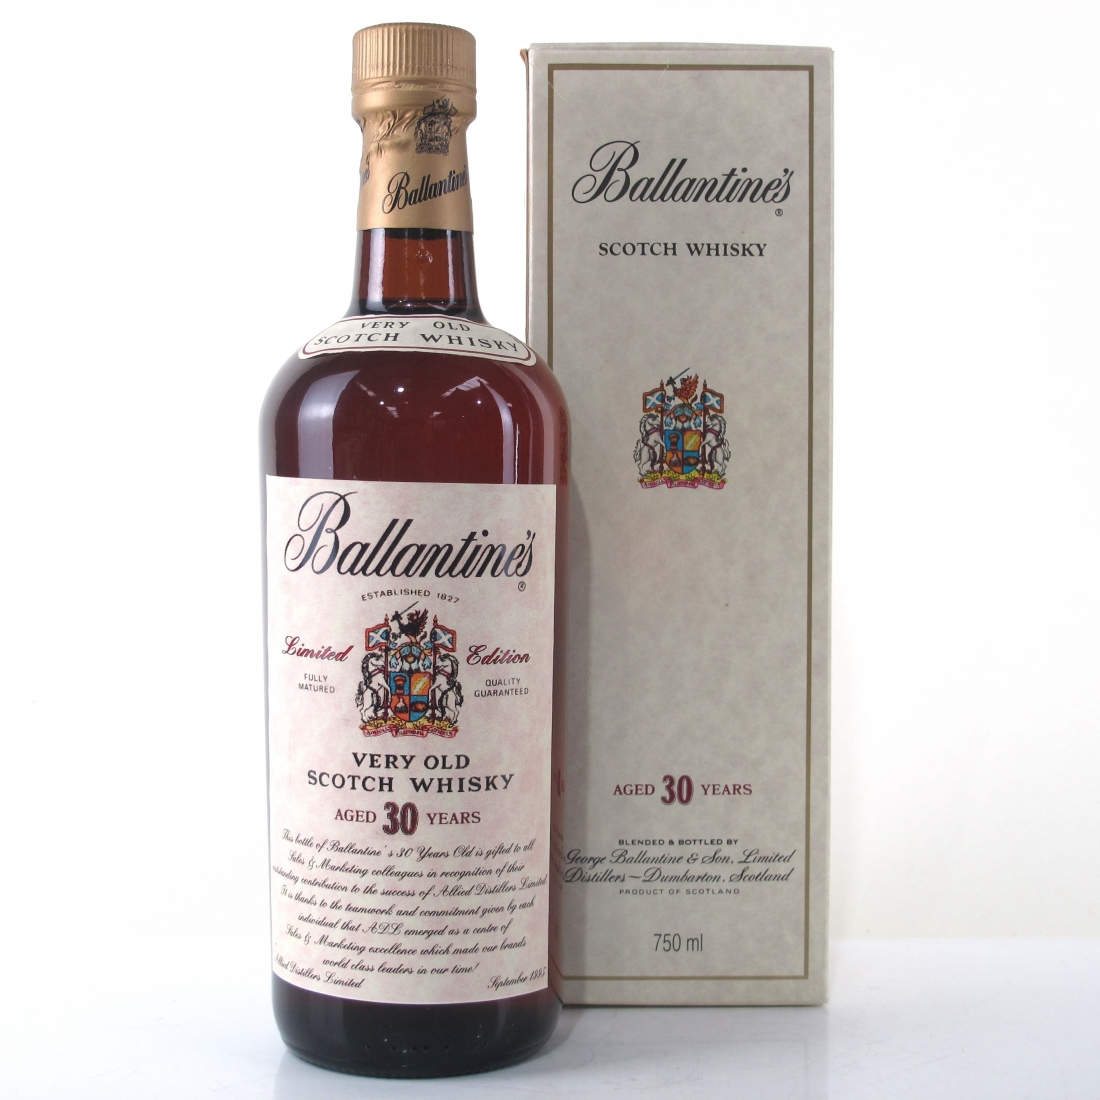 Ballantine's 30 Year Old Allied Distillers Limited Edition